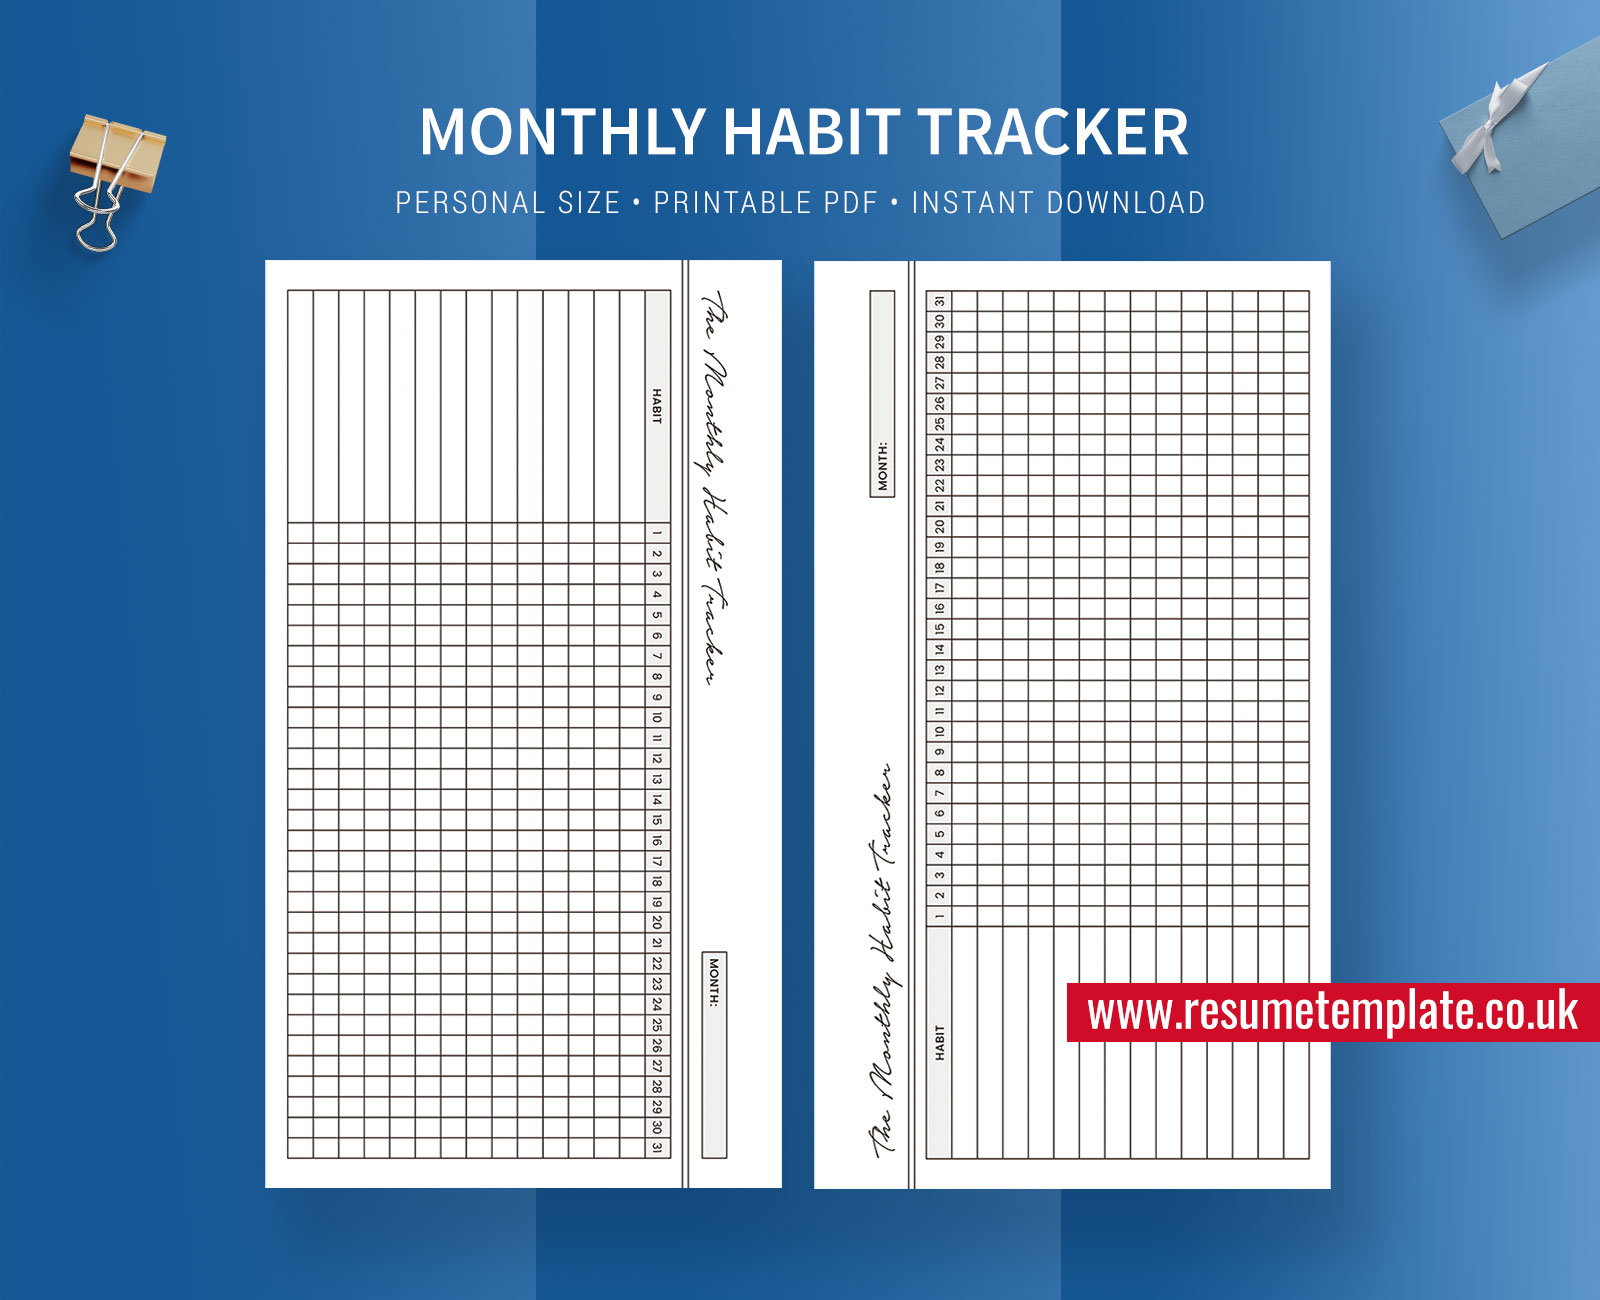 Habit Tracker Monthly Habit Tracker Habit Planner Inserts Personal Size Printable Planner Template Planner Design Filofax Personal Resumetemplate Co Uk